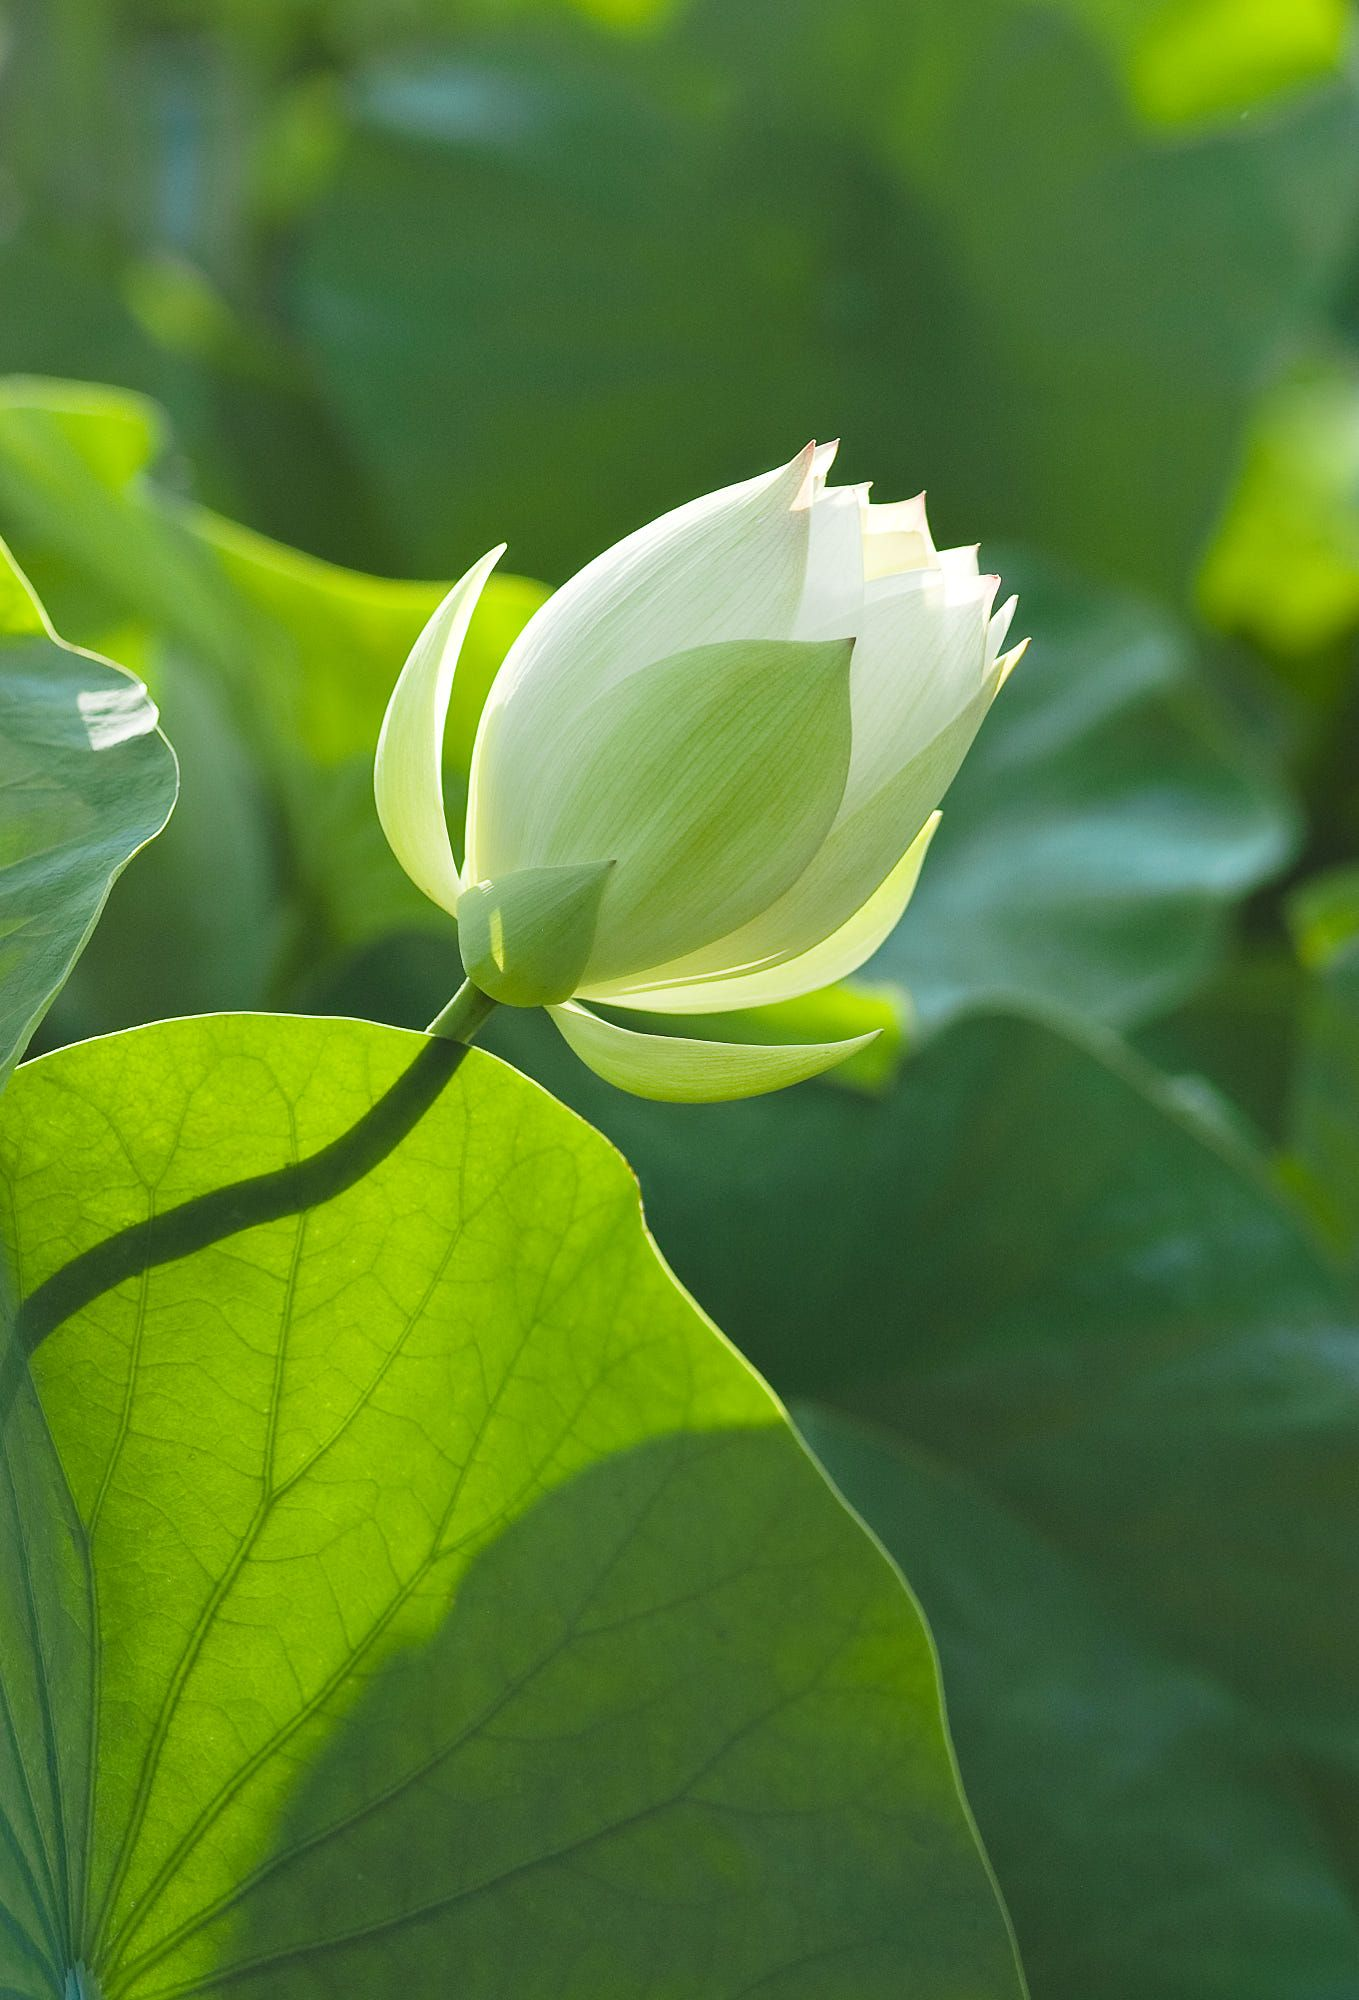 Pin by my info on nature pinterest park lotus and flowers izmirmasajfo